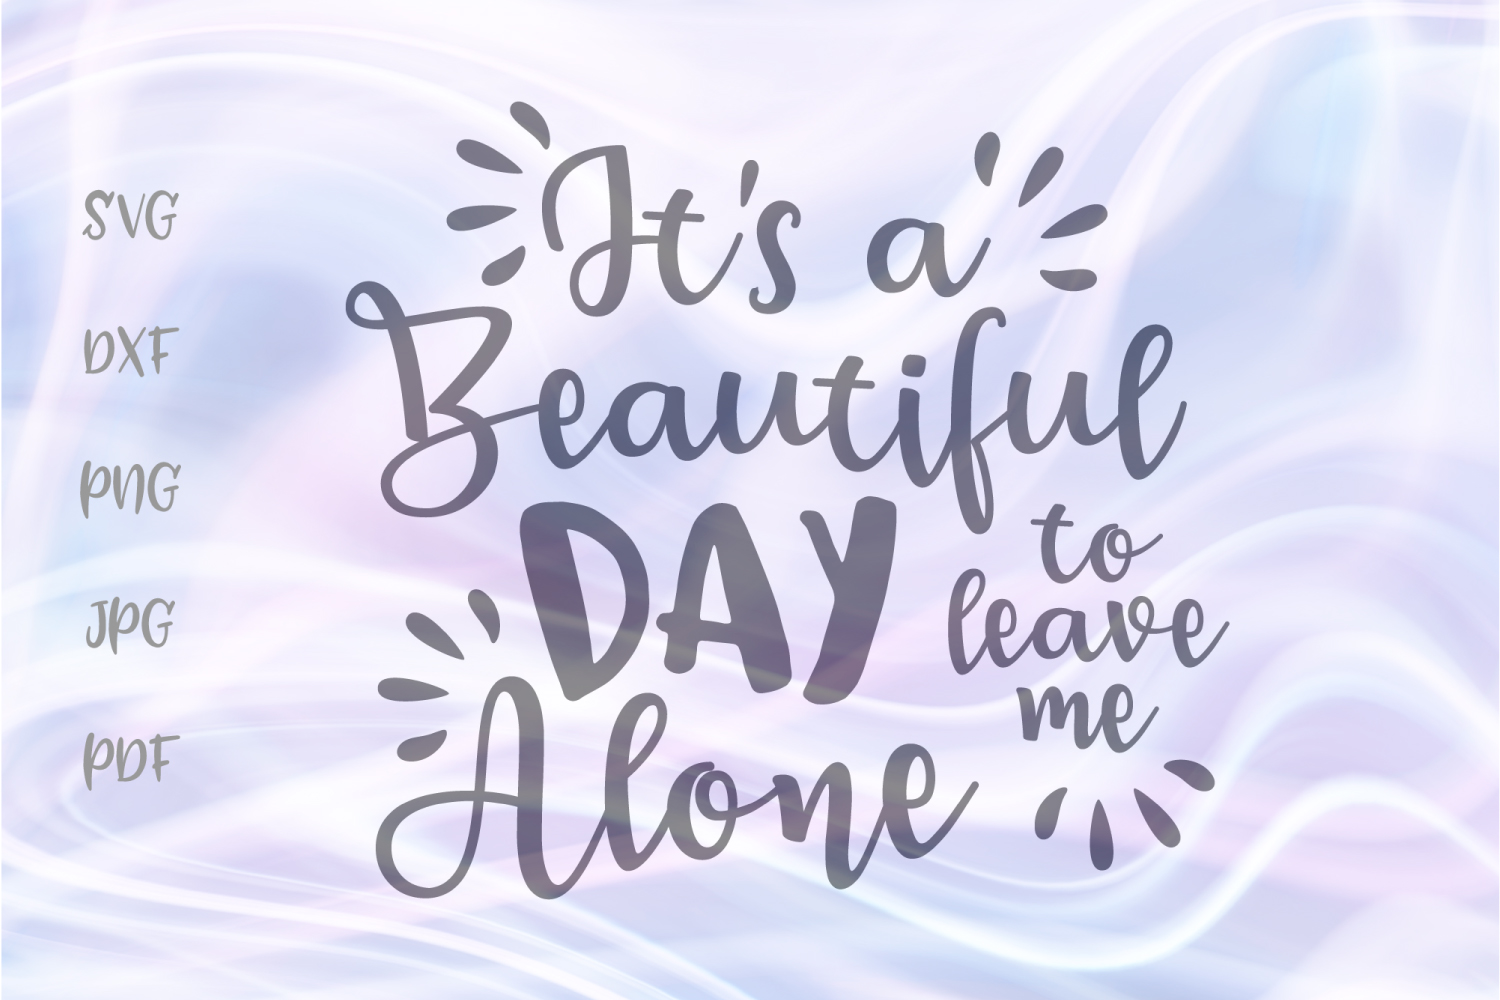 Download Free It S A Beautiful Day To Leave Me Alone Graphic By Digitals By for Cricut Explore, Silhouette and other cutting machines.